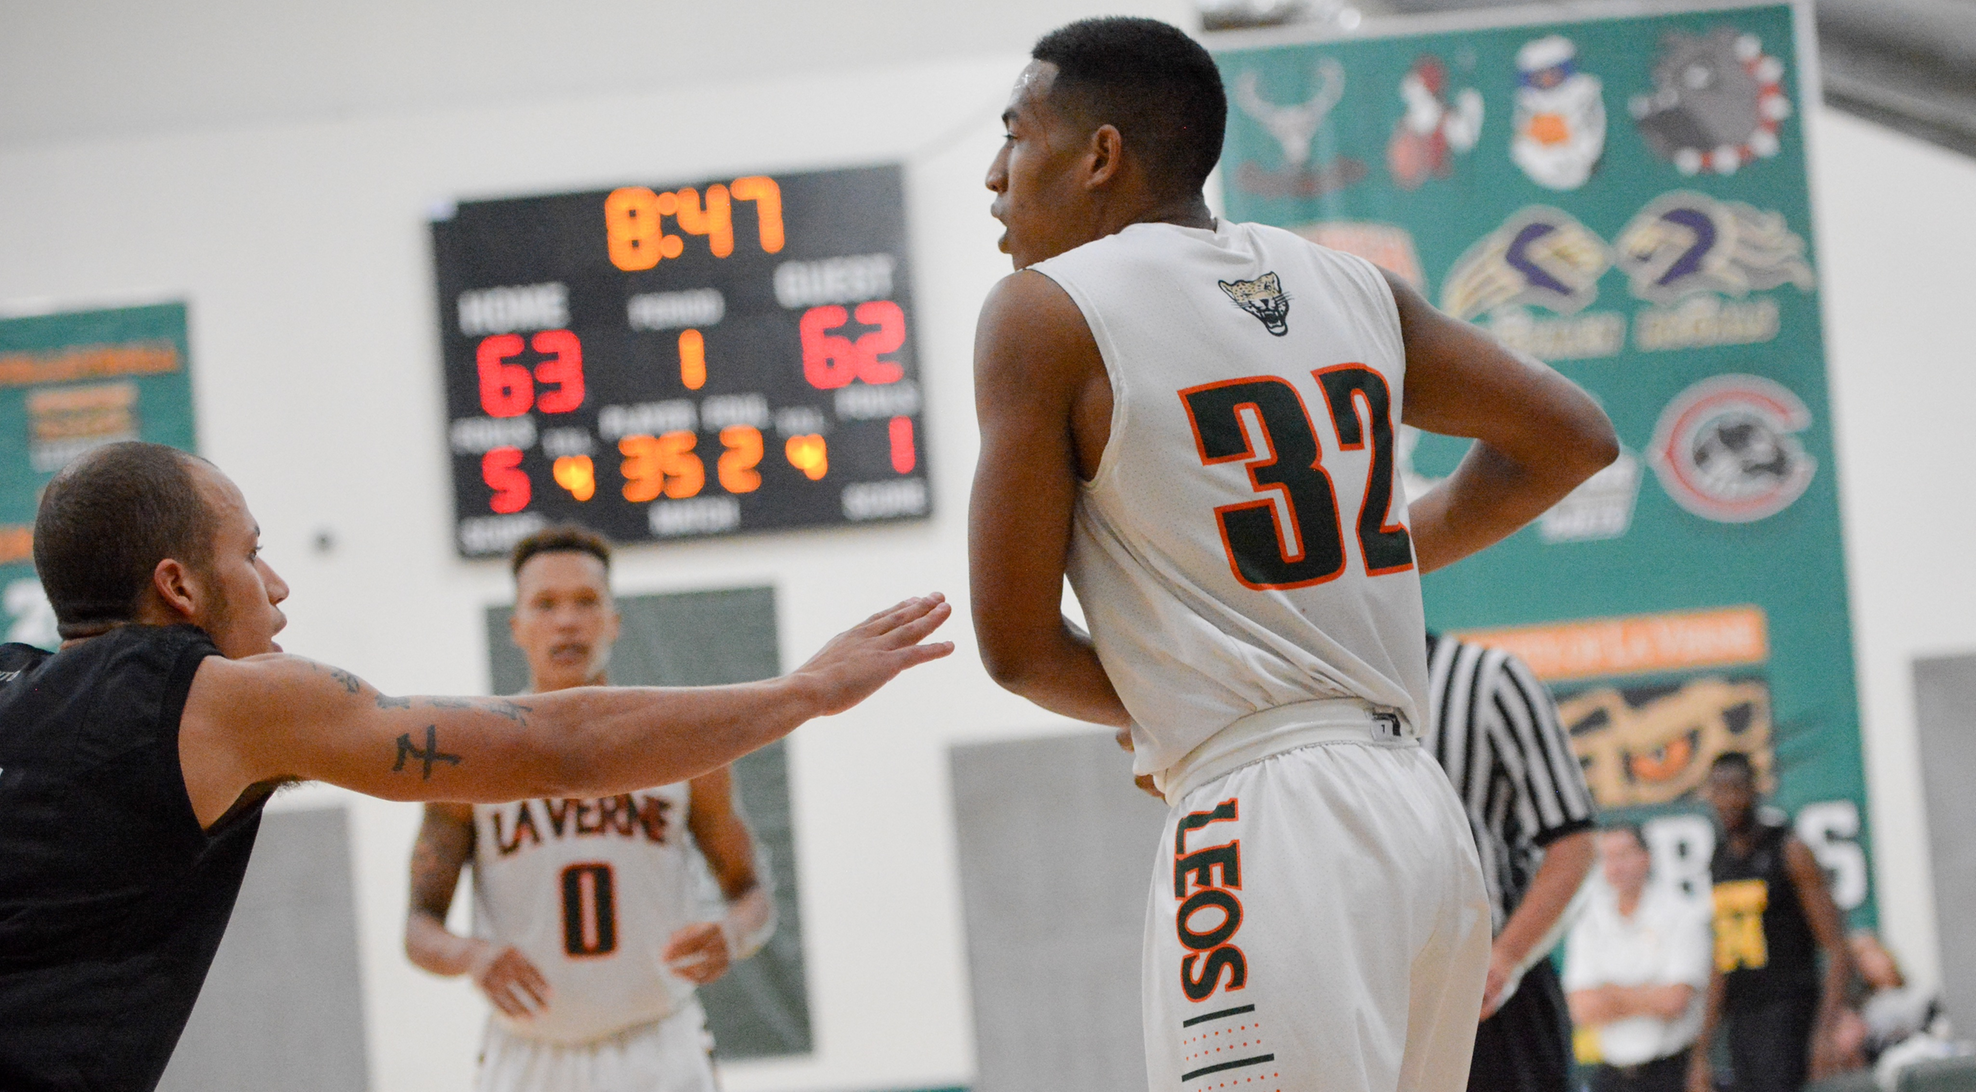 White has 26 and 12 to lead La Verne past Linfield 87-80